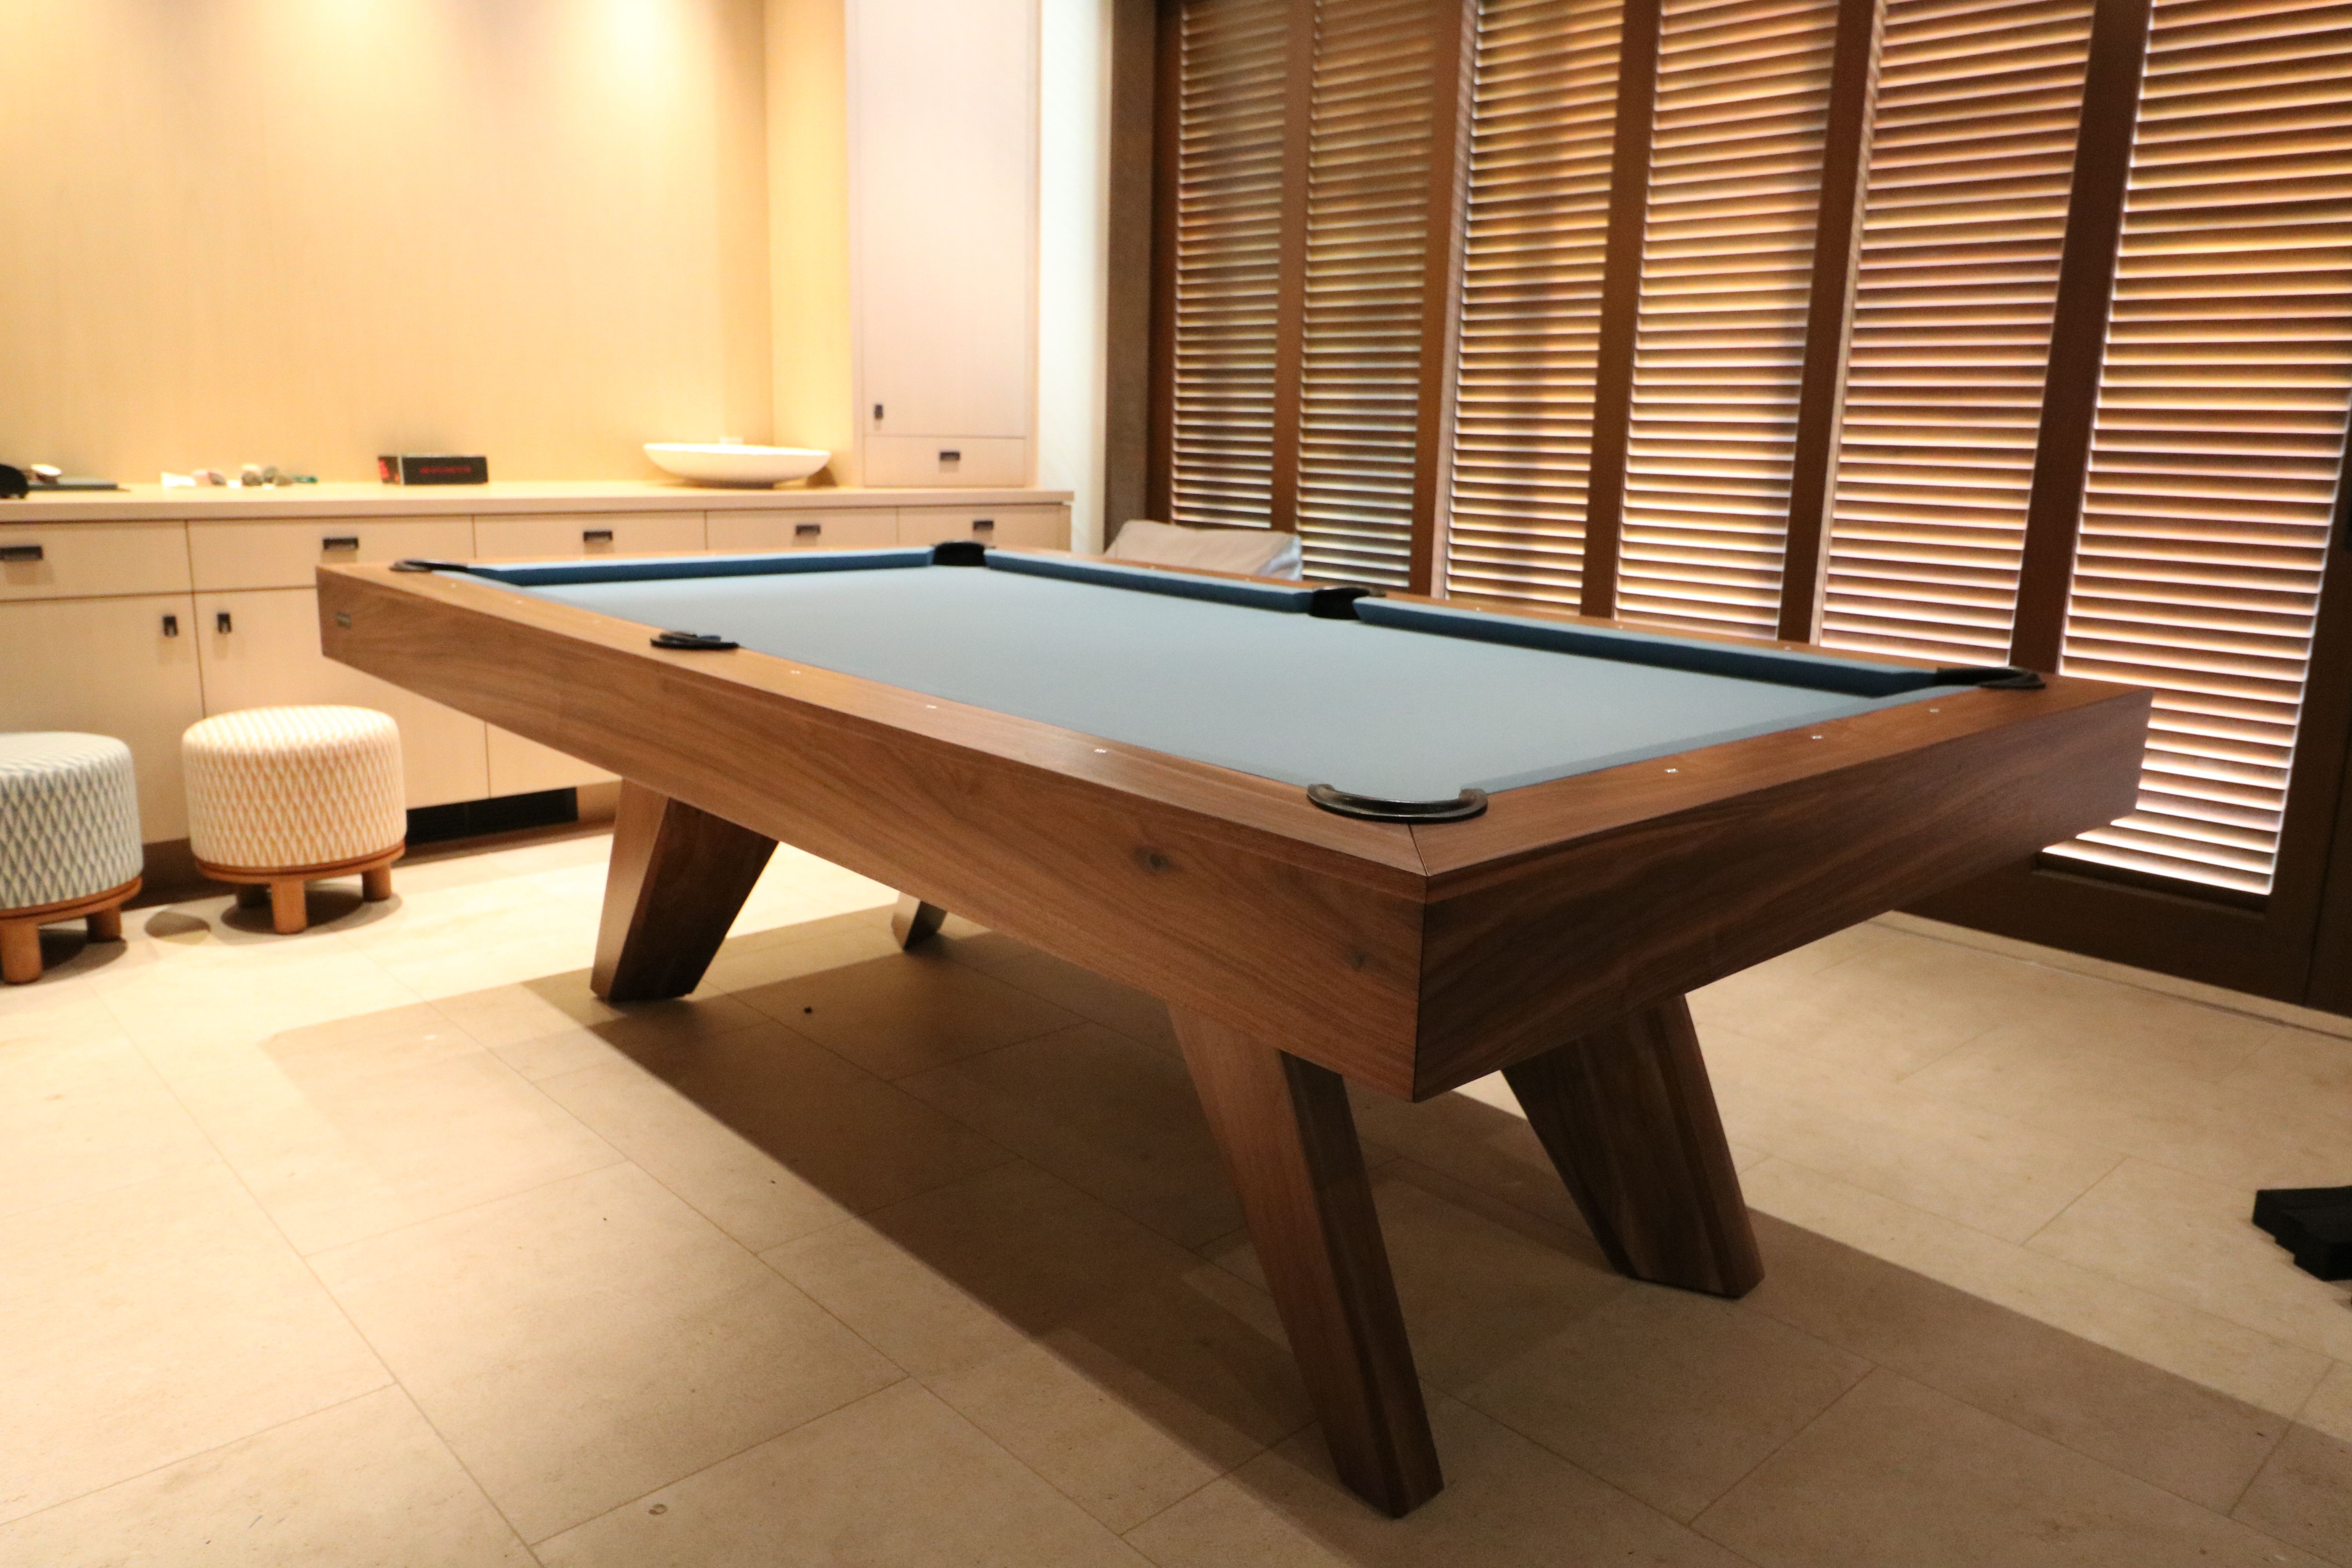 The Trigon S Splayed Legs Invoke Classic Mid Century Design And Emulate Eames Bertoia Cherner S Modern Pool Table Mid Century Modern Pool Table Modern Pools